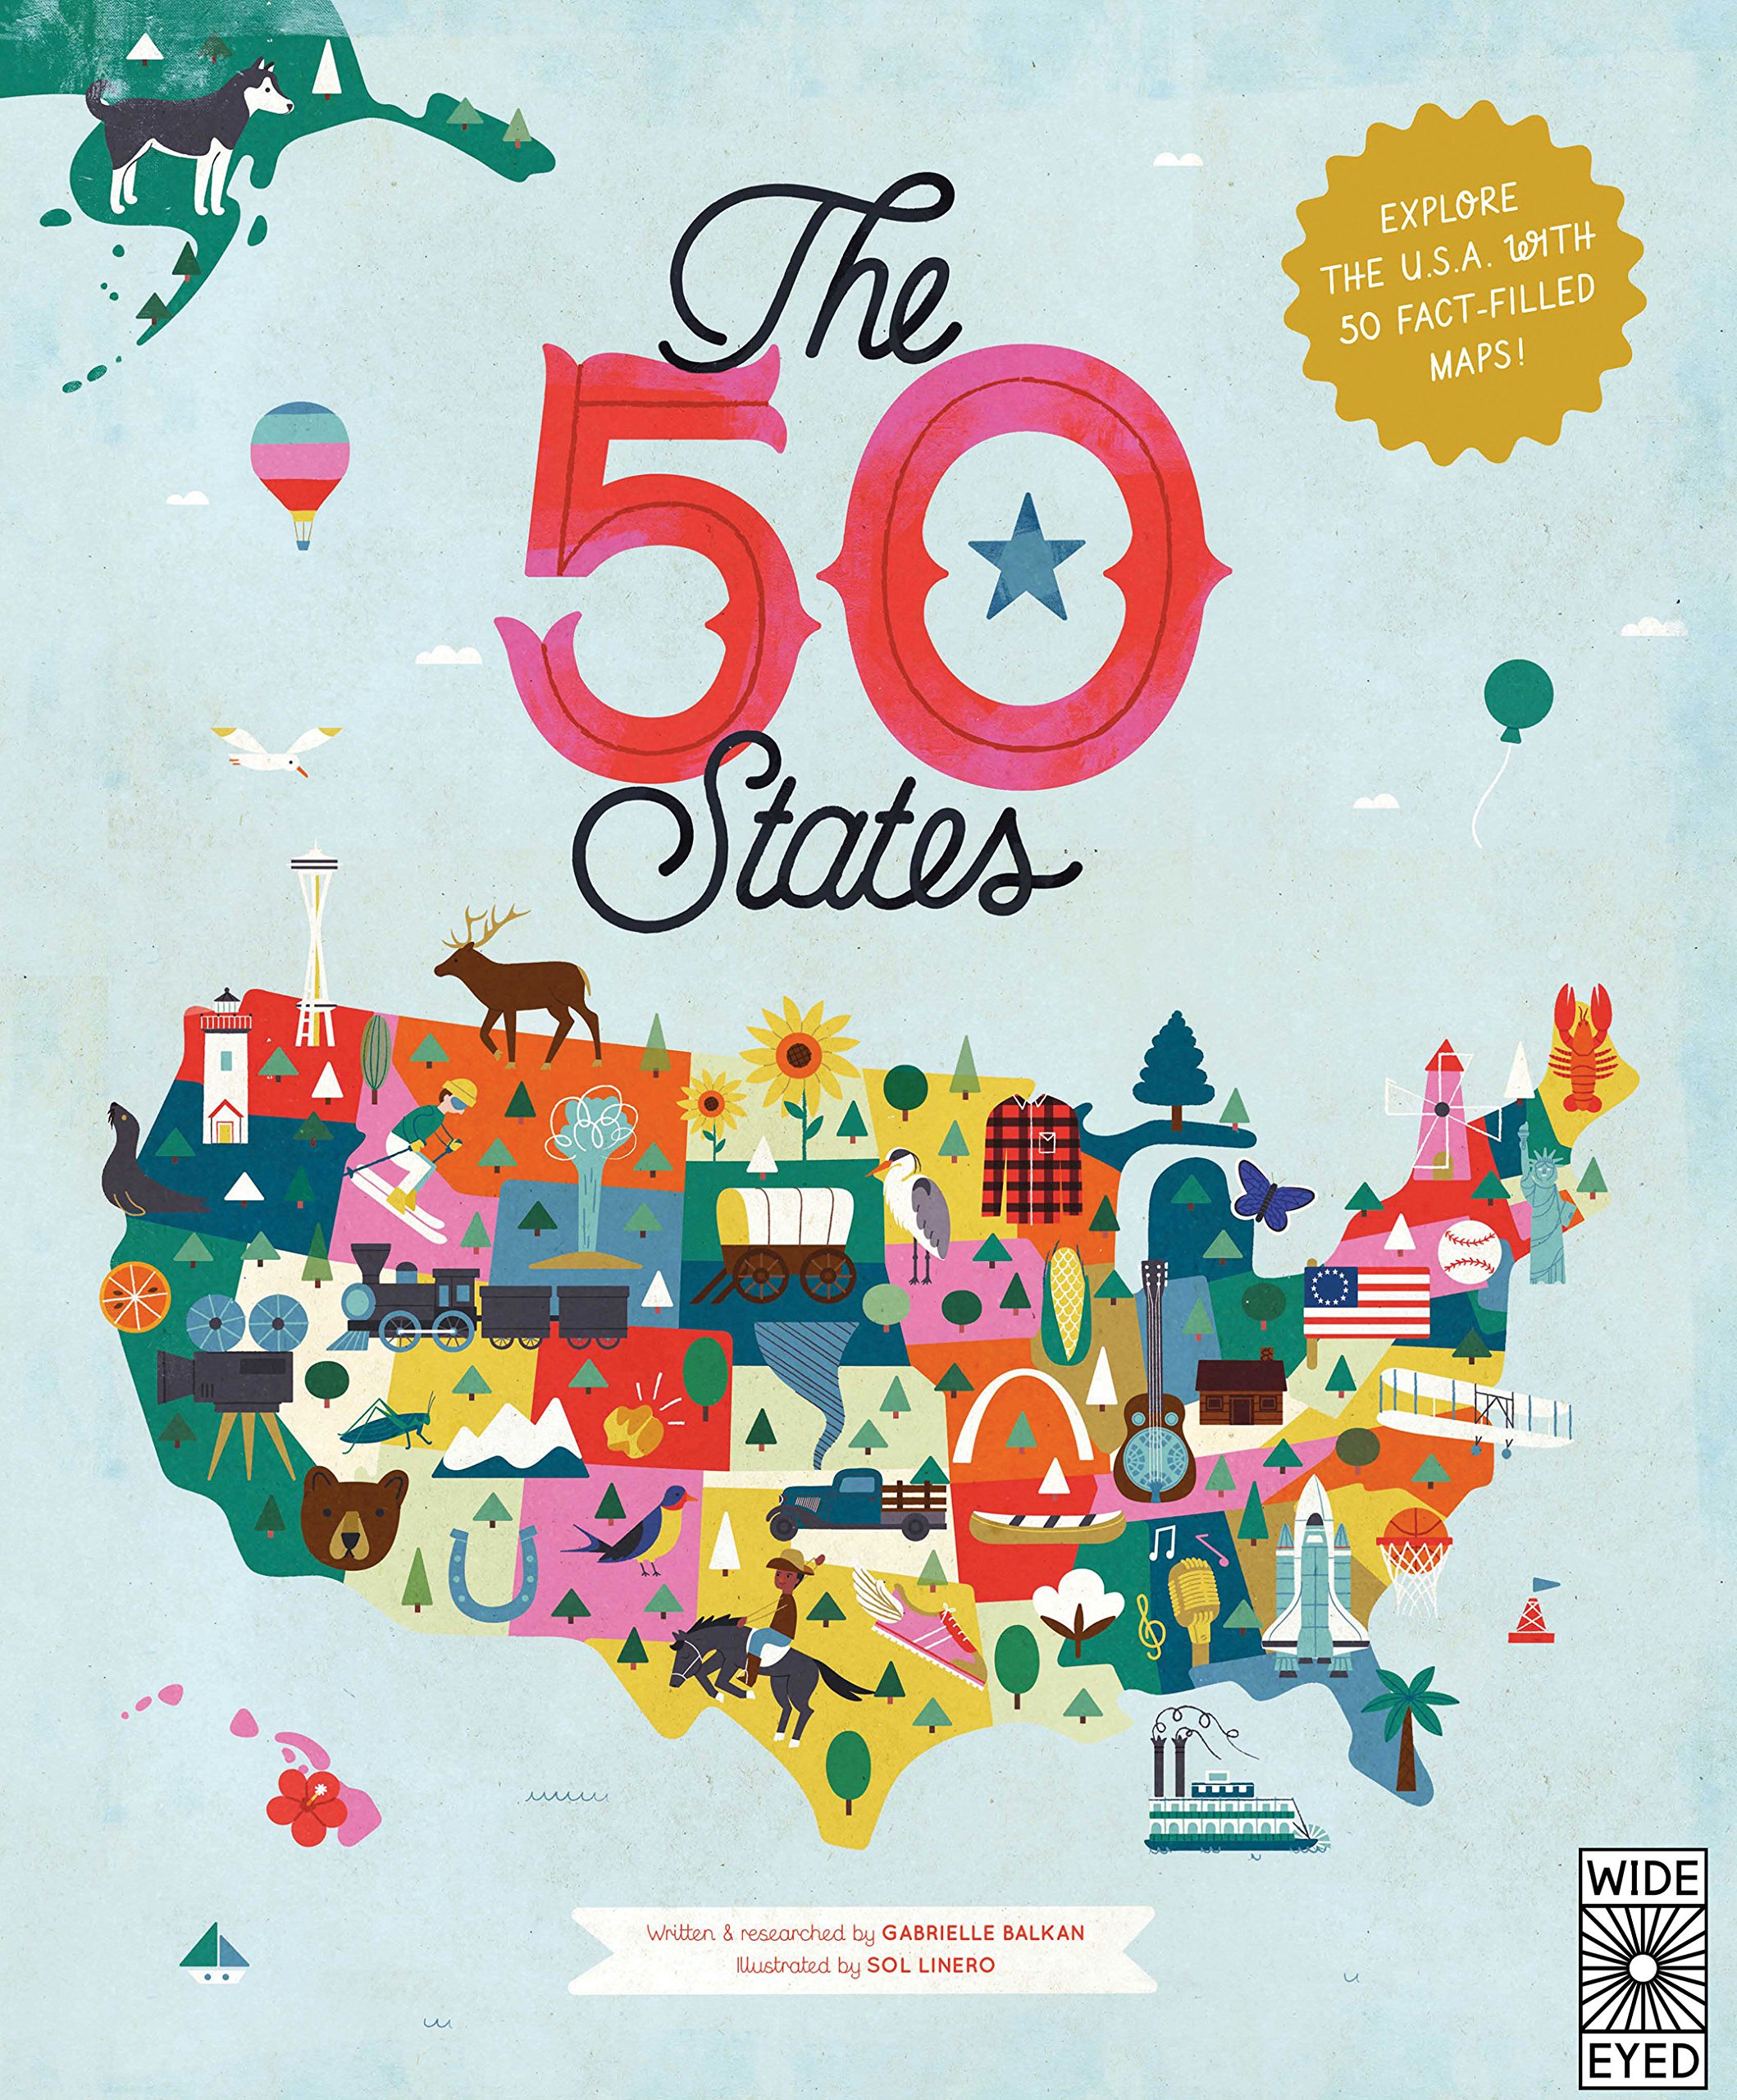 The 50 States: Explore the U.S.A. with 50 fact-filled maps! by WIDE EYED (Image #2)